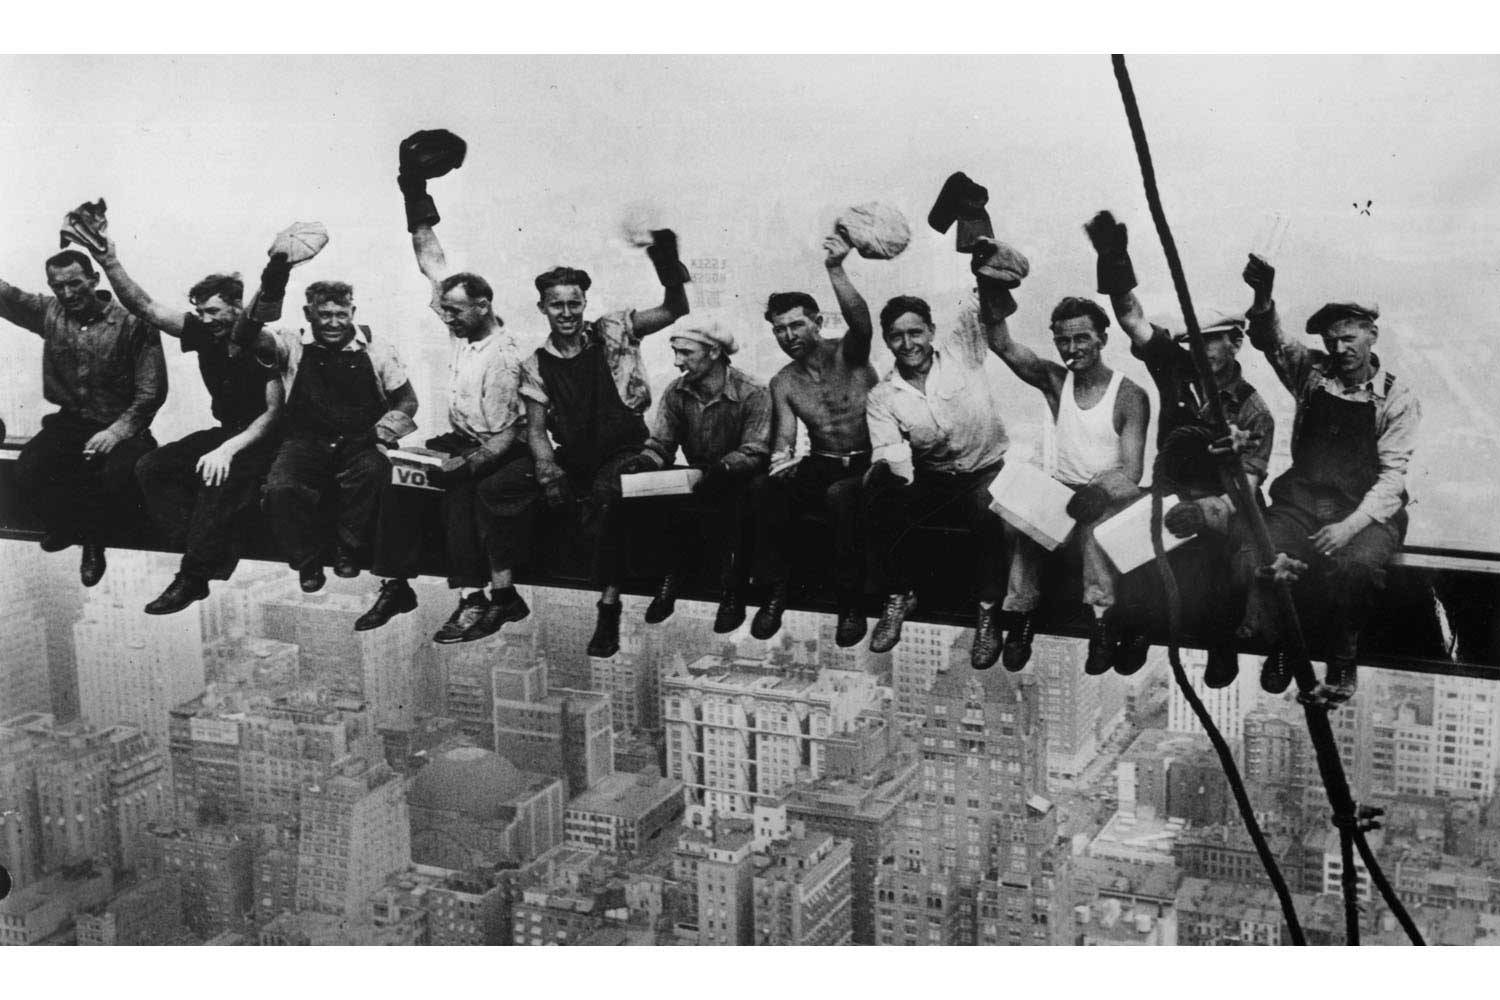 Rockeffeller Center construction workers, 1932